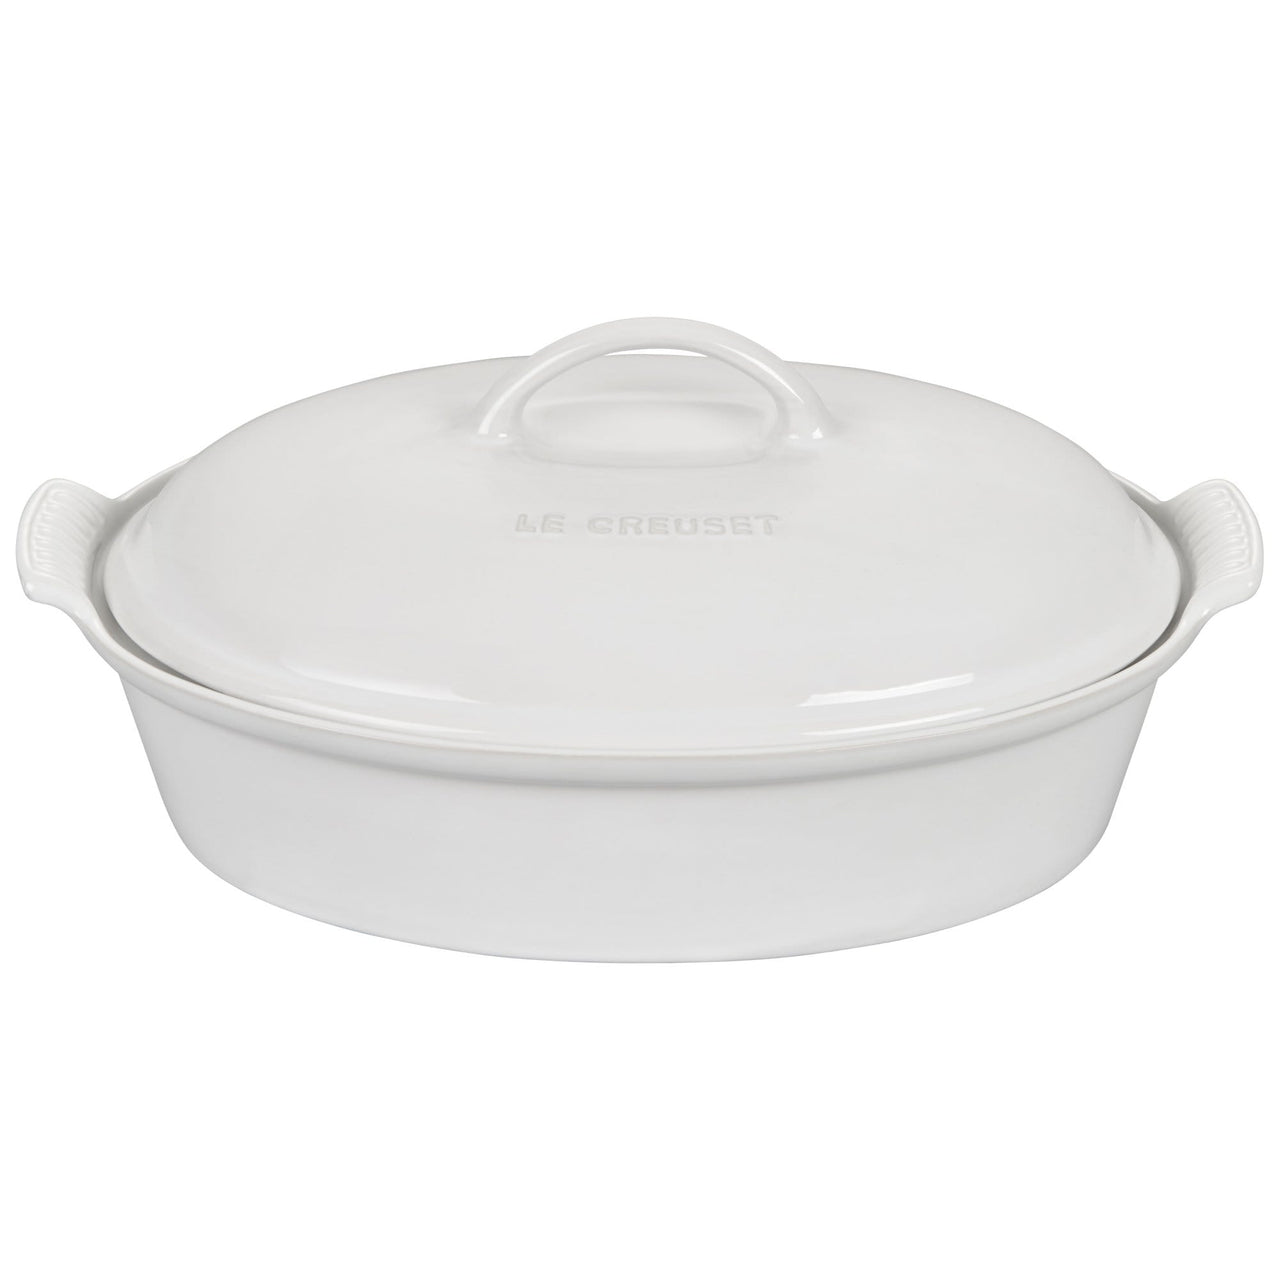 Le Creuset Cookware White Heritage 4-qt Covered Oval Casserole